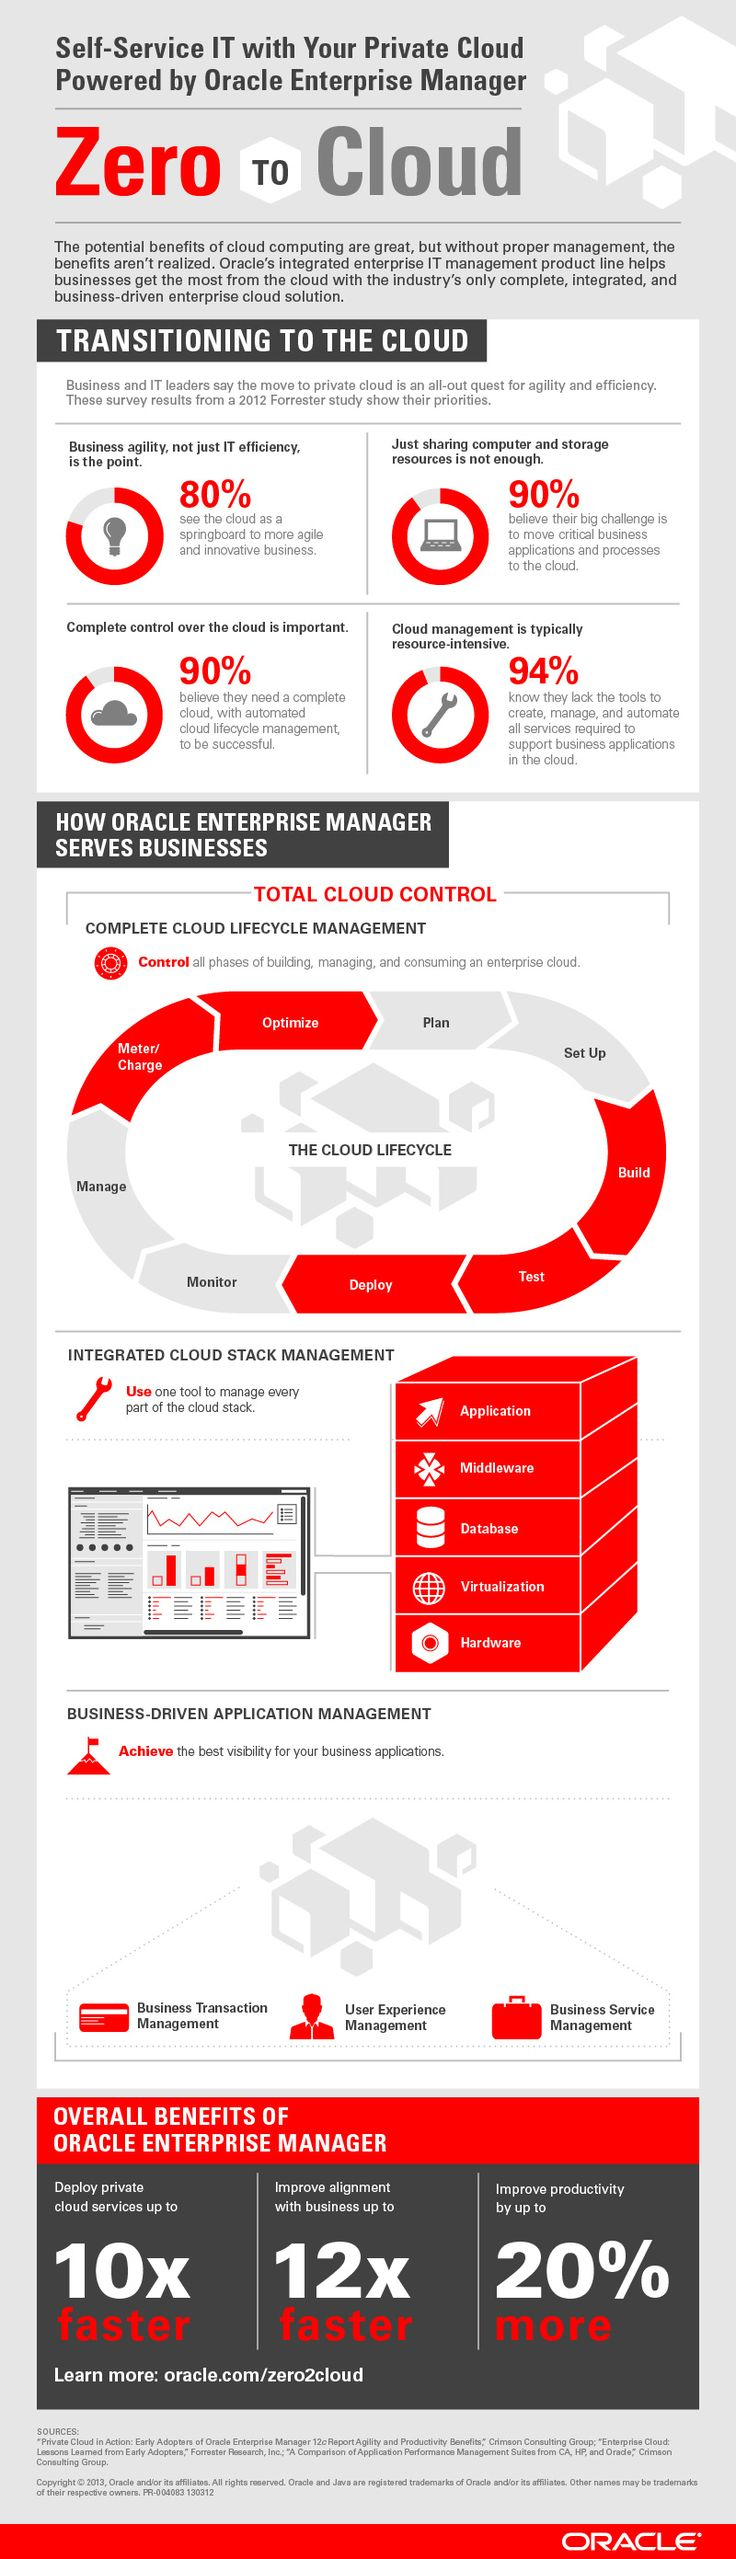 Zero to Cloud with Oracle Enterprise Manager. Click the image to learn more!